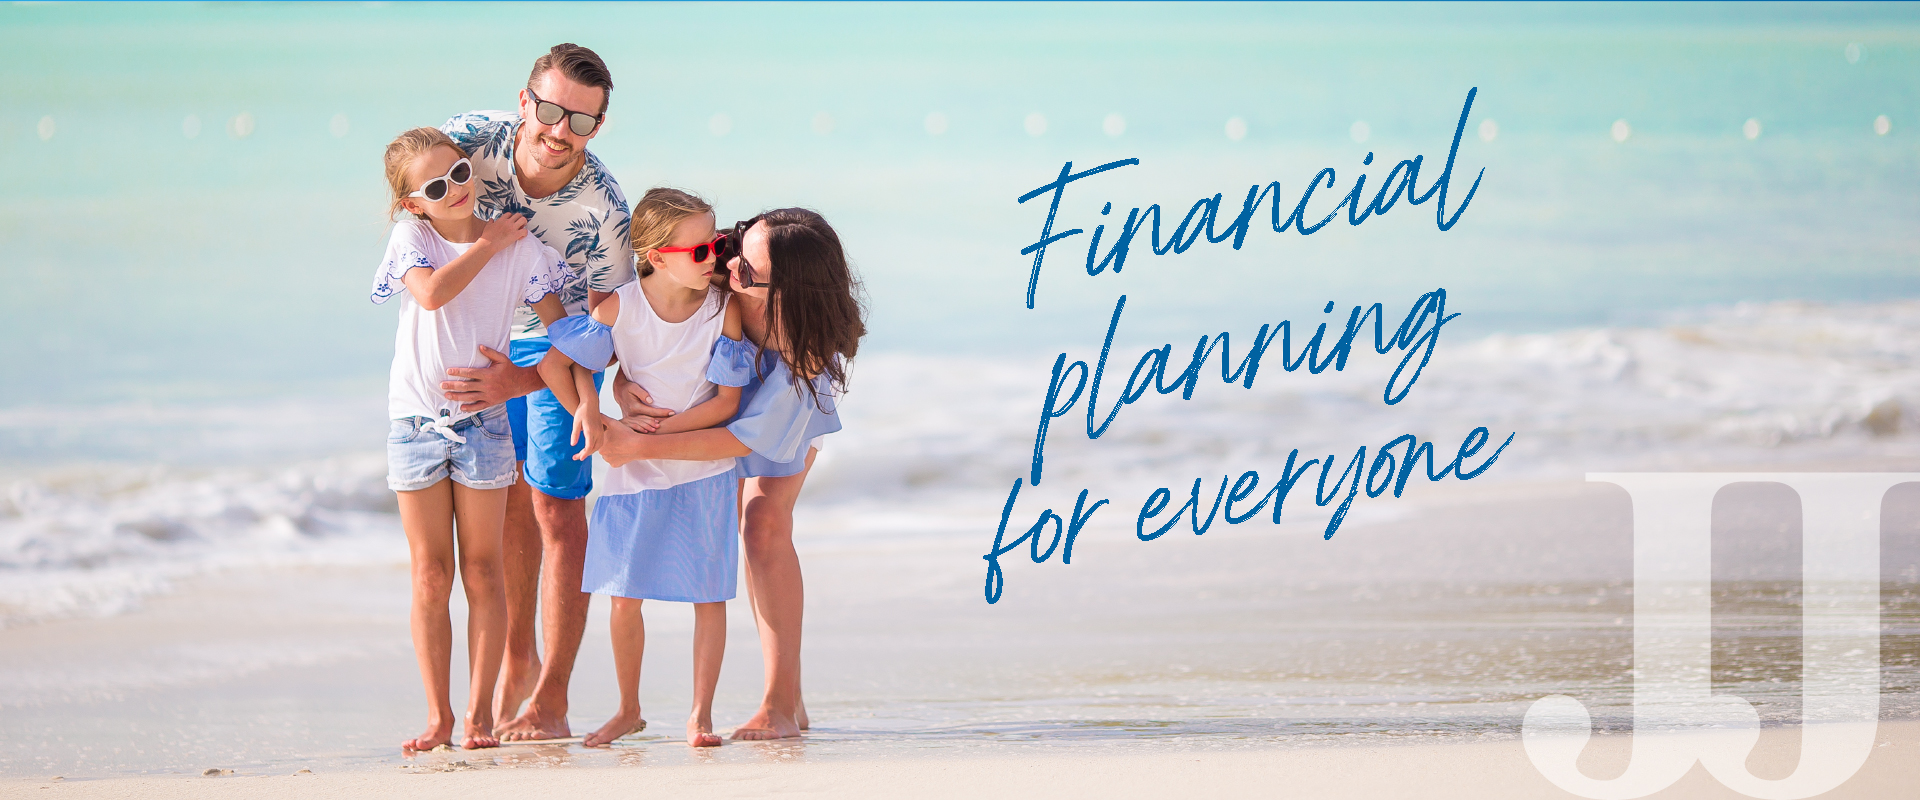 Financial planning for everyone